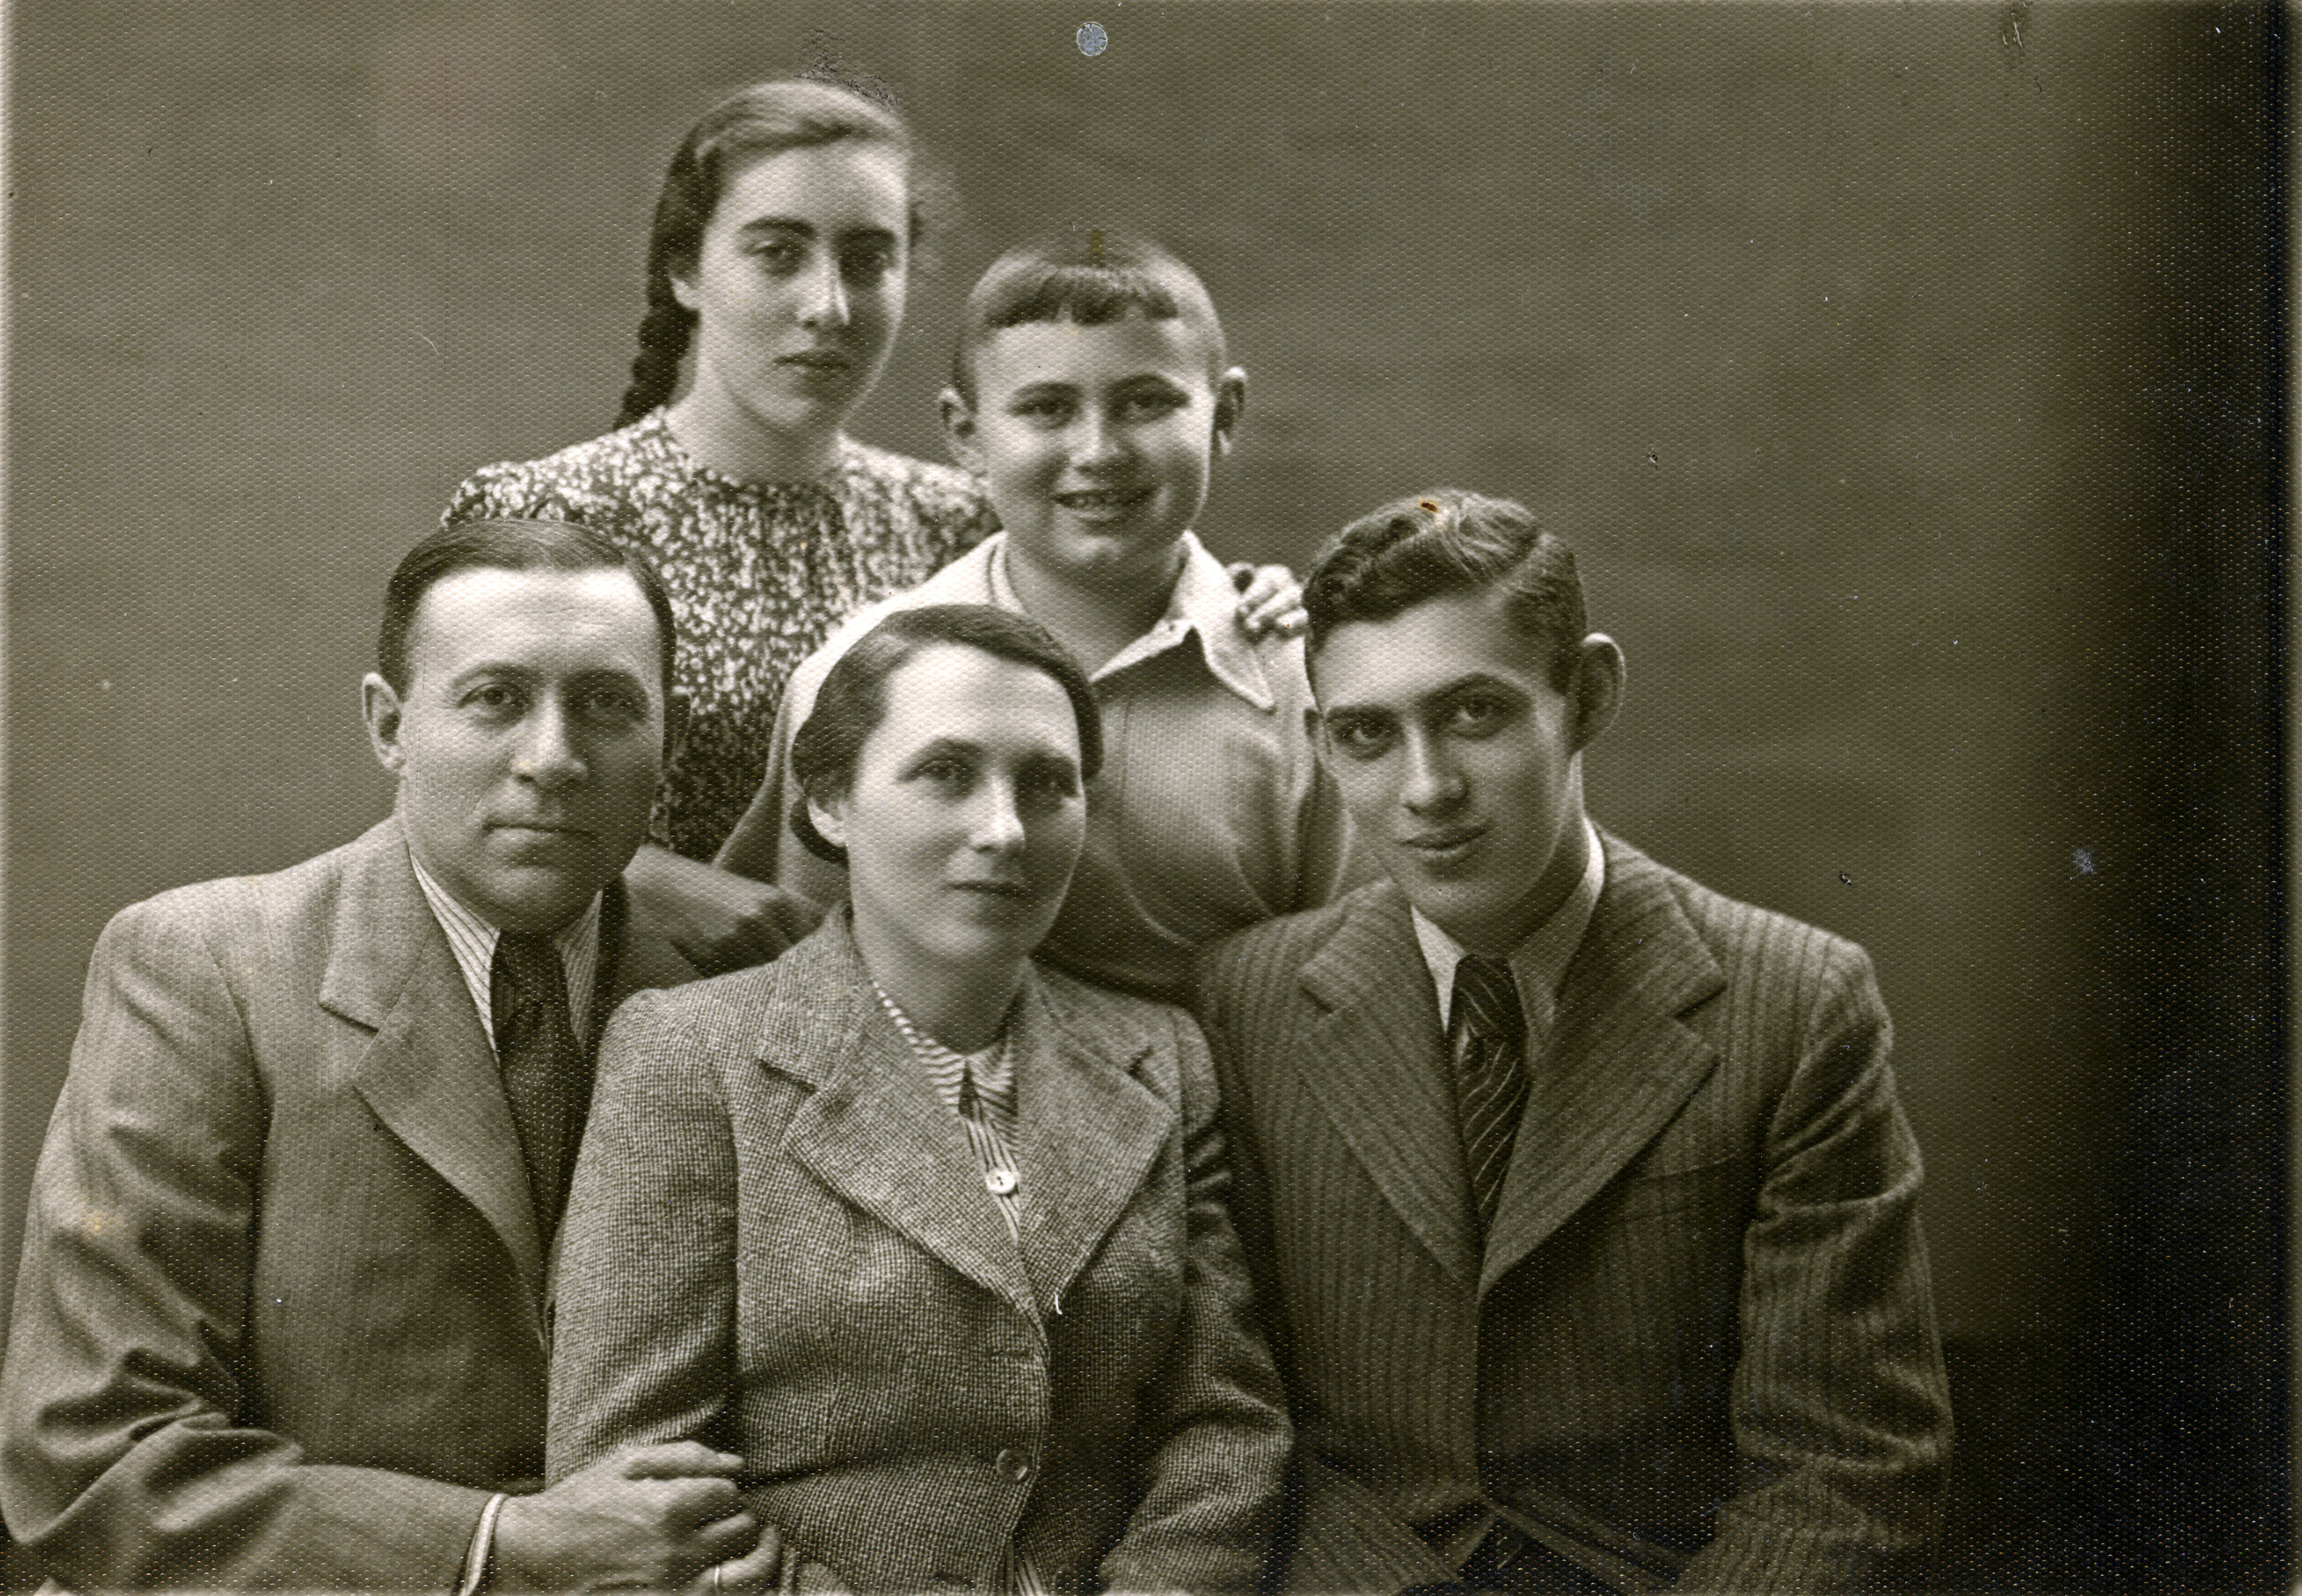 Studio portrait of a Jewish family in Kalisz, Poland.  Pictued are Hersz and Rachel Gluba, with their children Ester, Michael, and Szamszon.